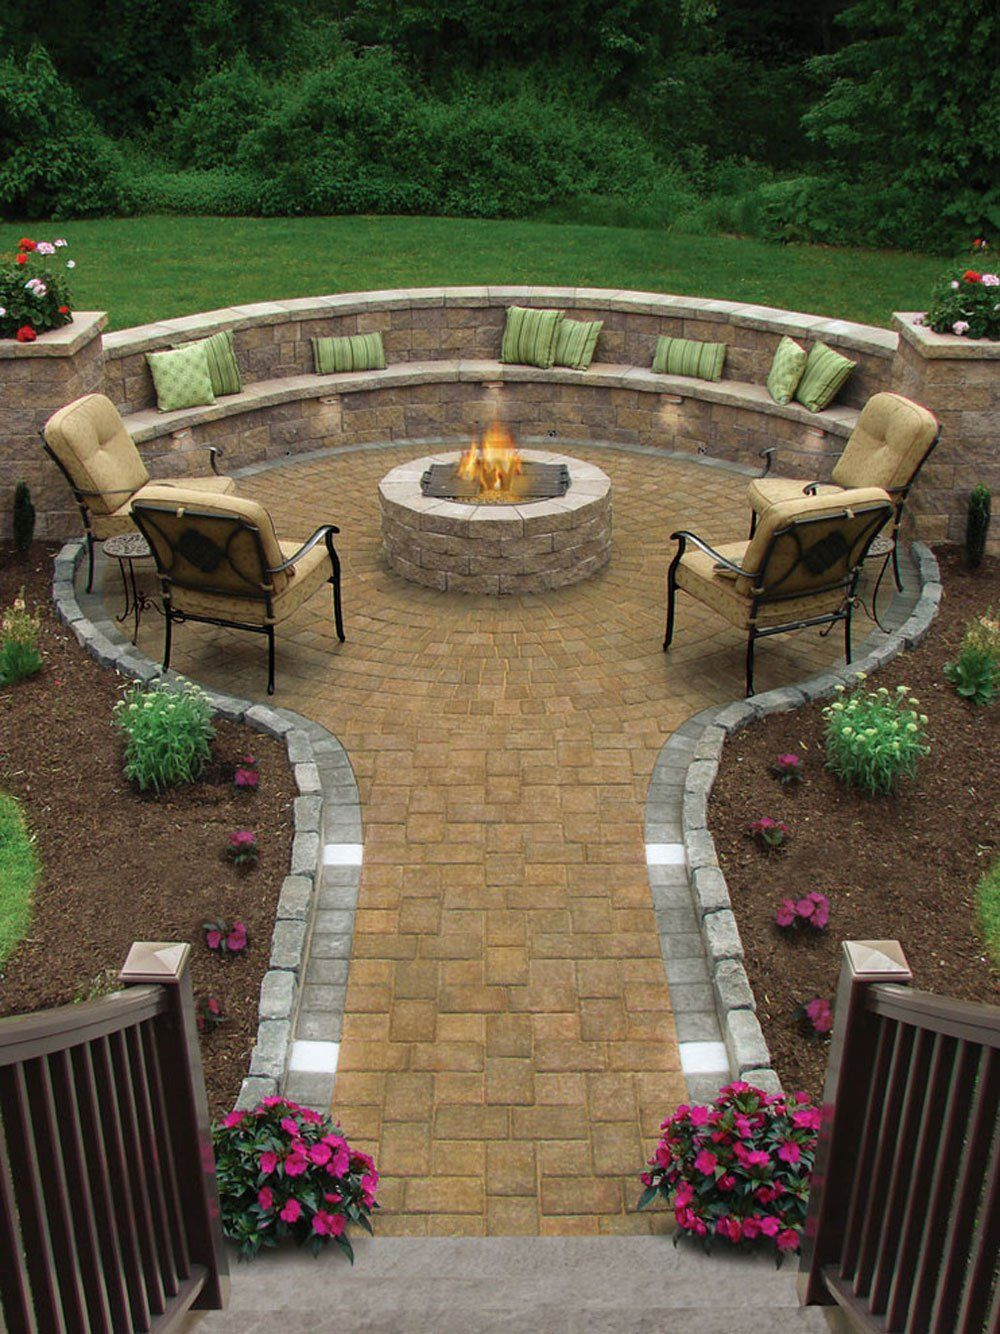 17 Of The Most Amazing Seating Area Around The Fire Pit Ever with 15 Smart Concepts of How to Make Fire Pit Ideas For Small Backyard